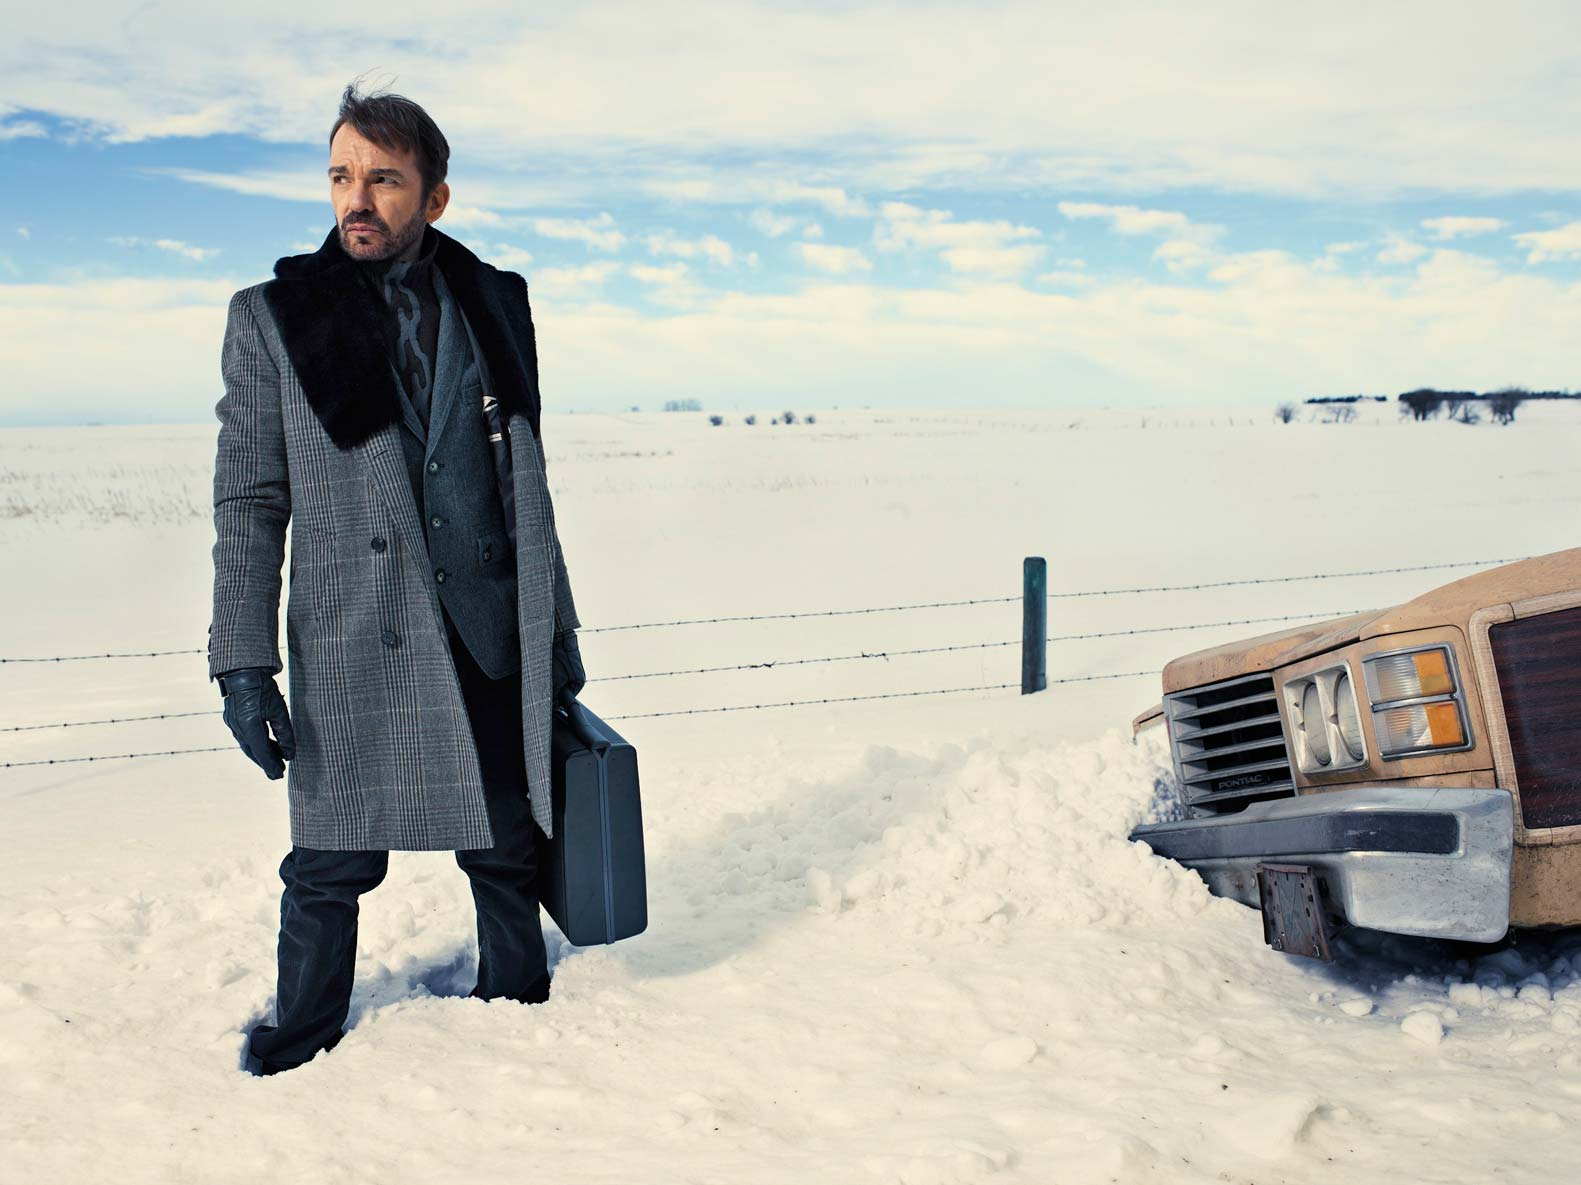 Billy Bob Thornton is up to no good as Lorne Malvo in the new FX series Fargo